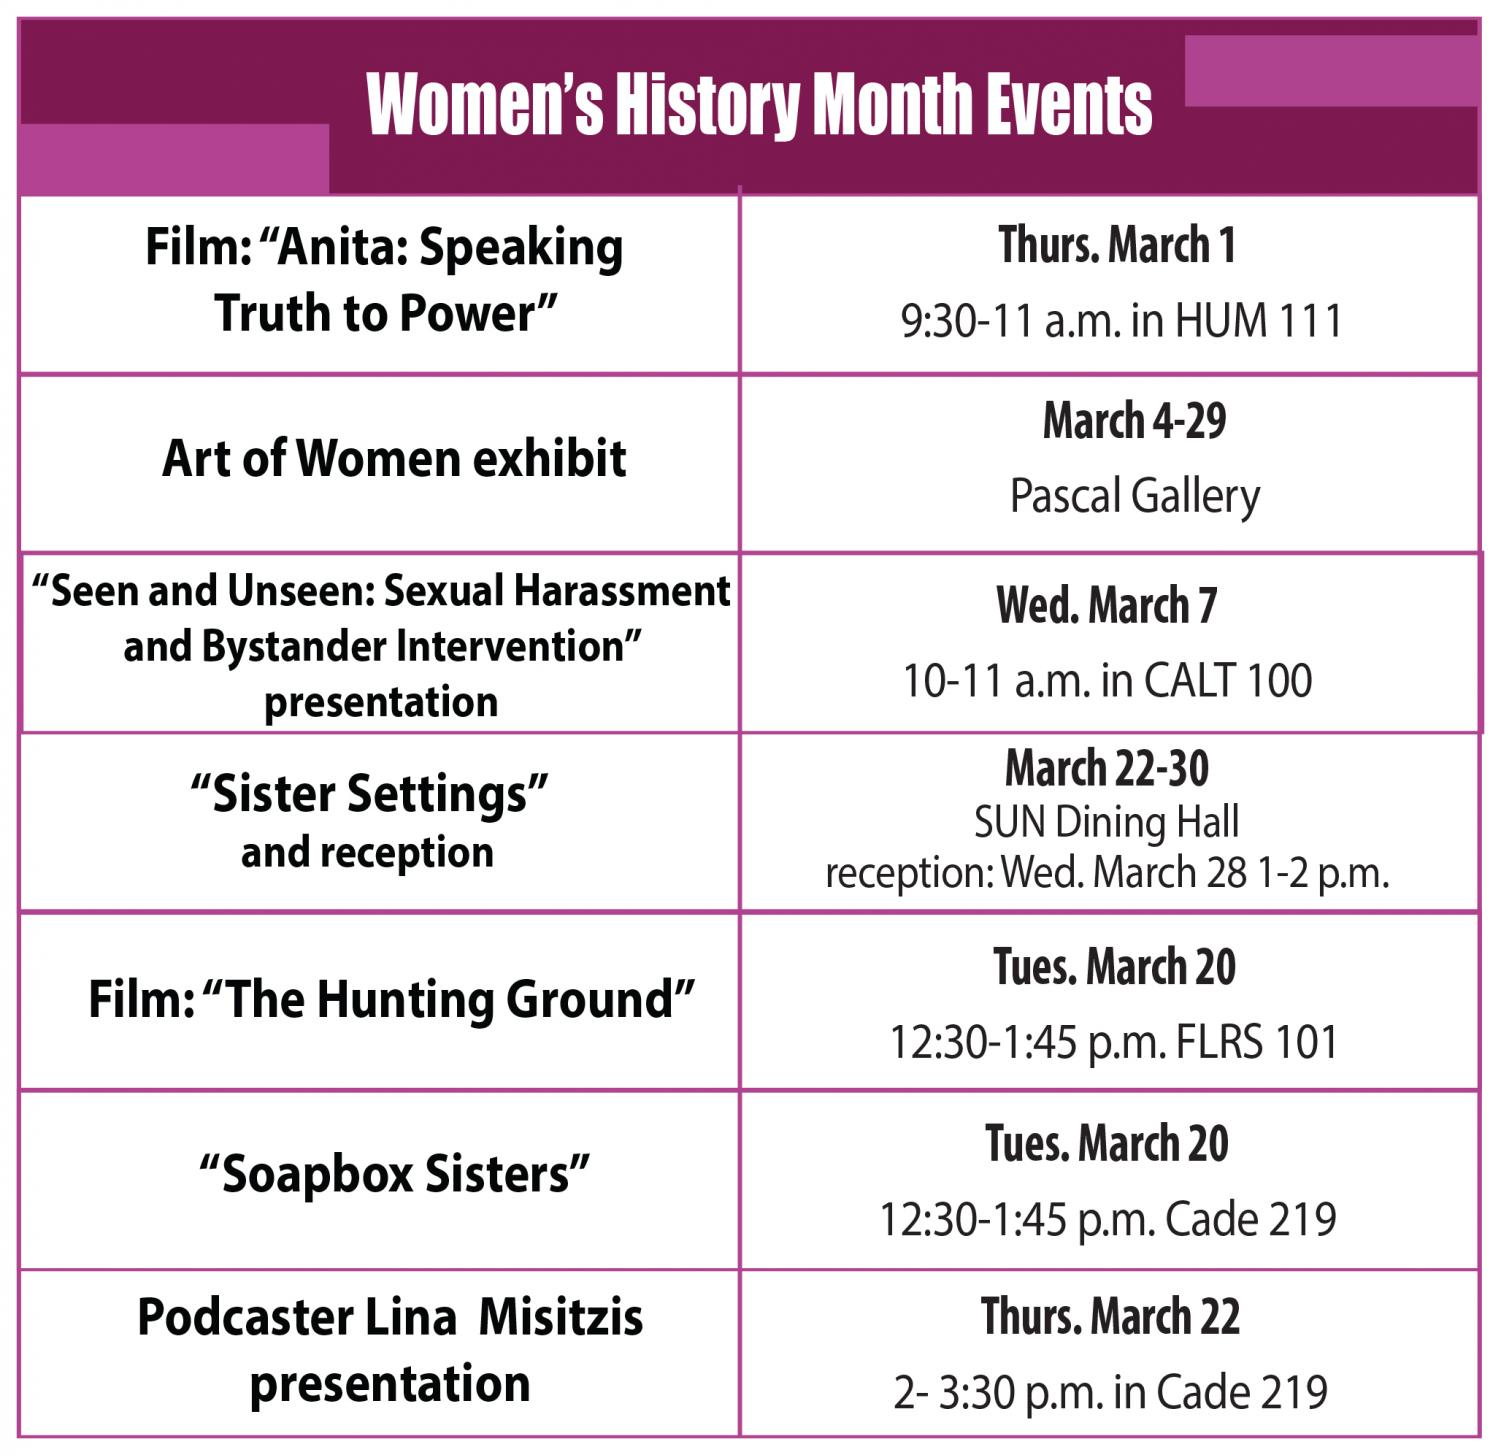 AACC is celebrating Women's History Month with performances, art, speeches and films.